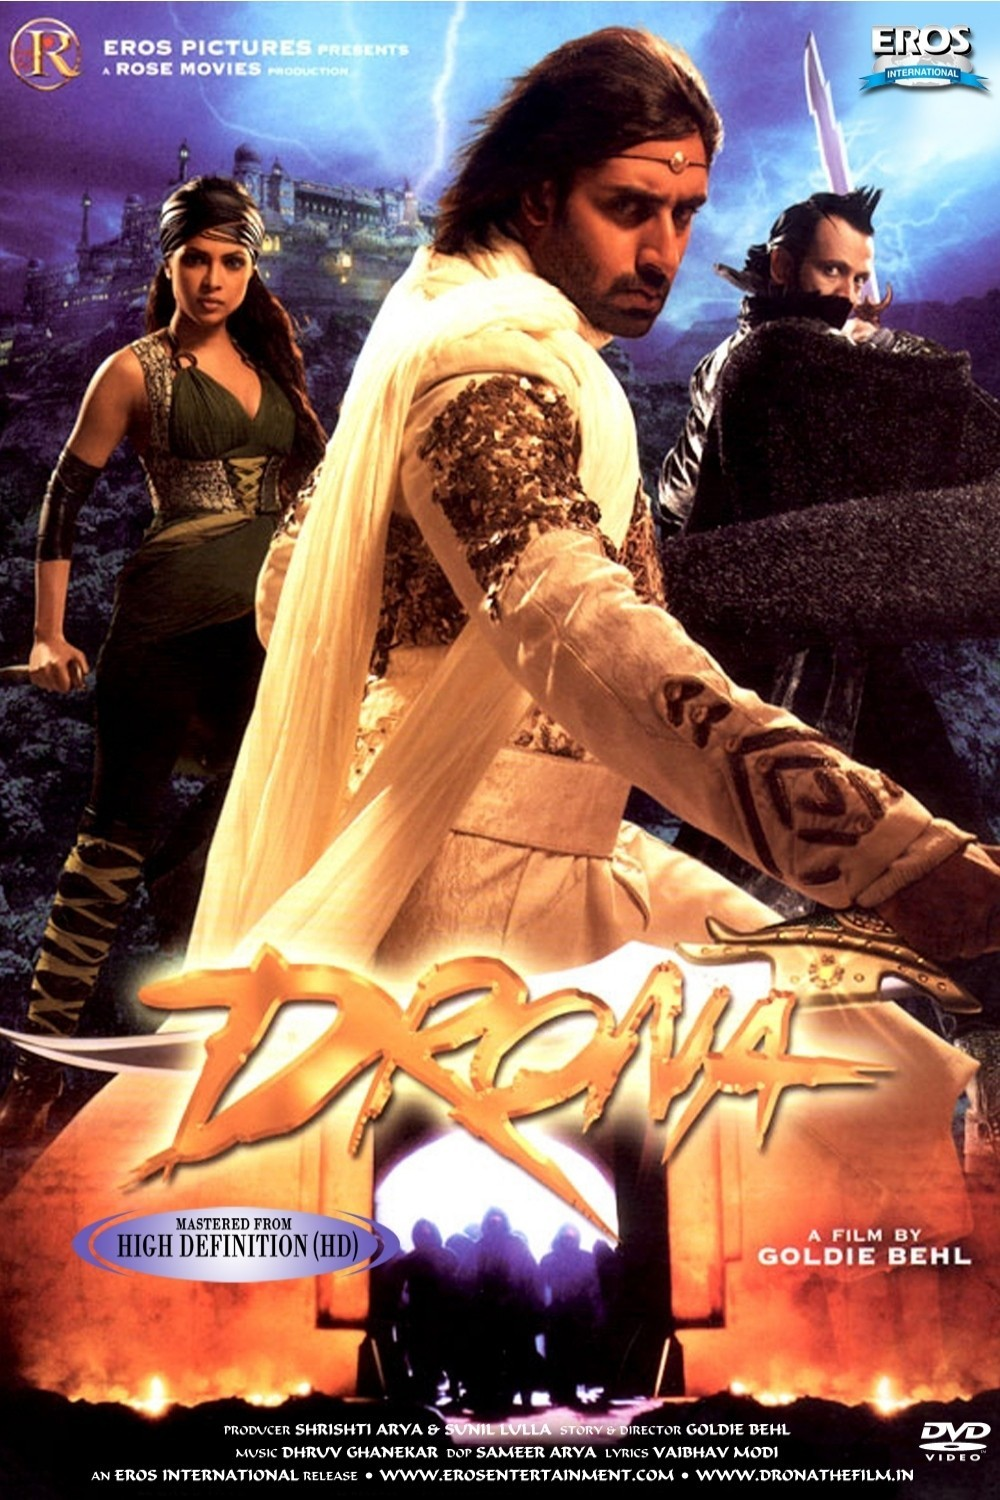 Drona poster is copied from Price of Persia